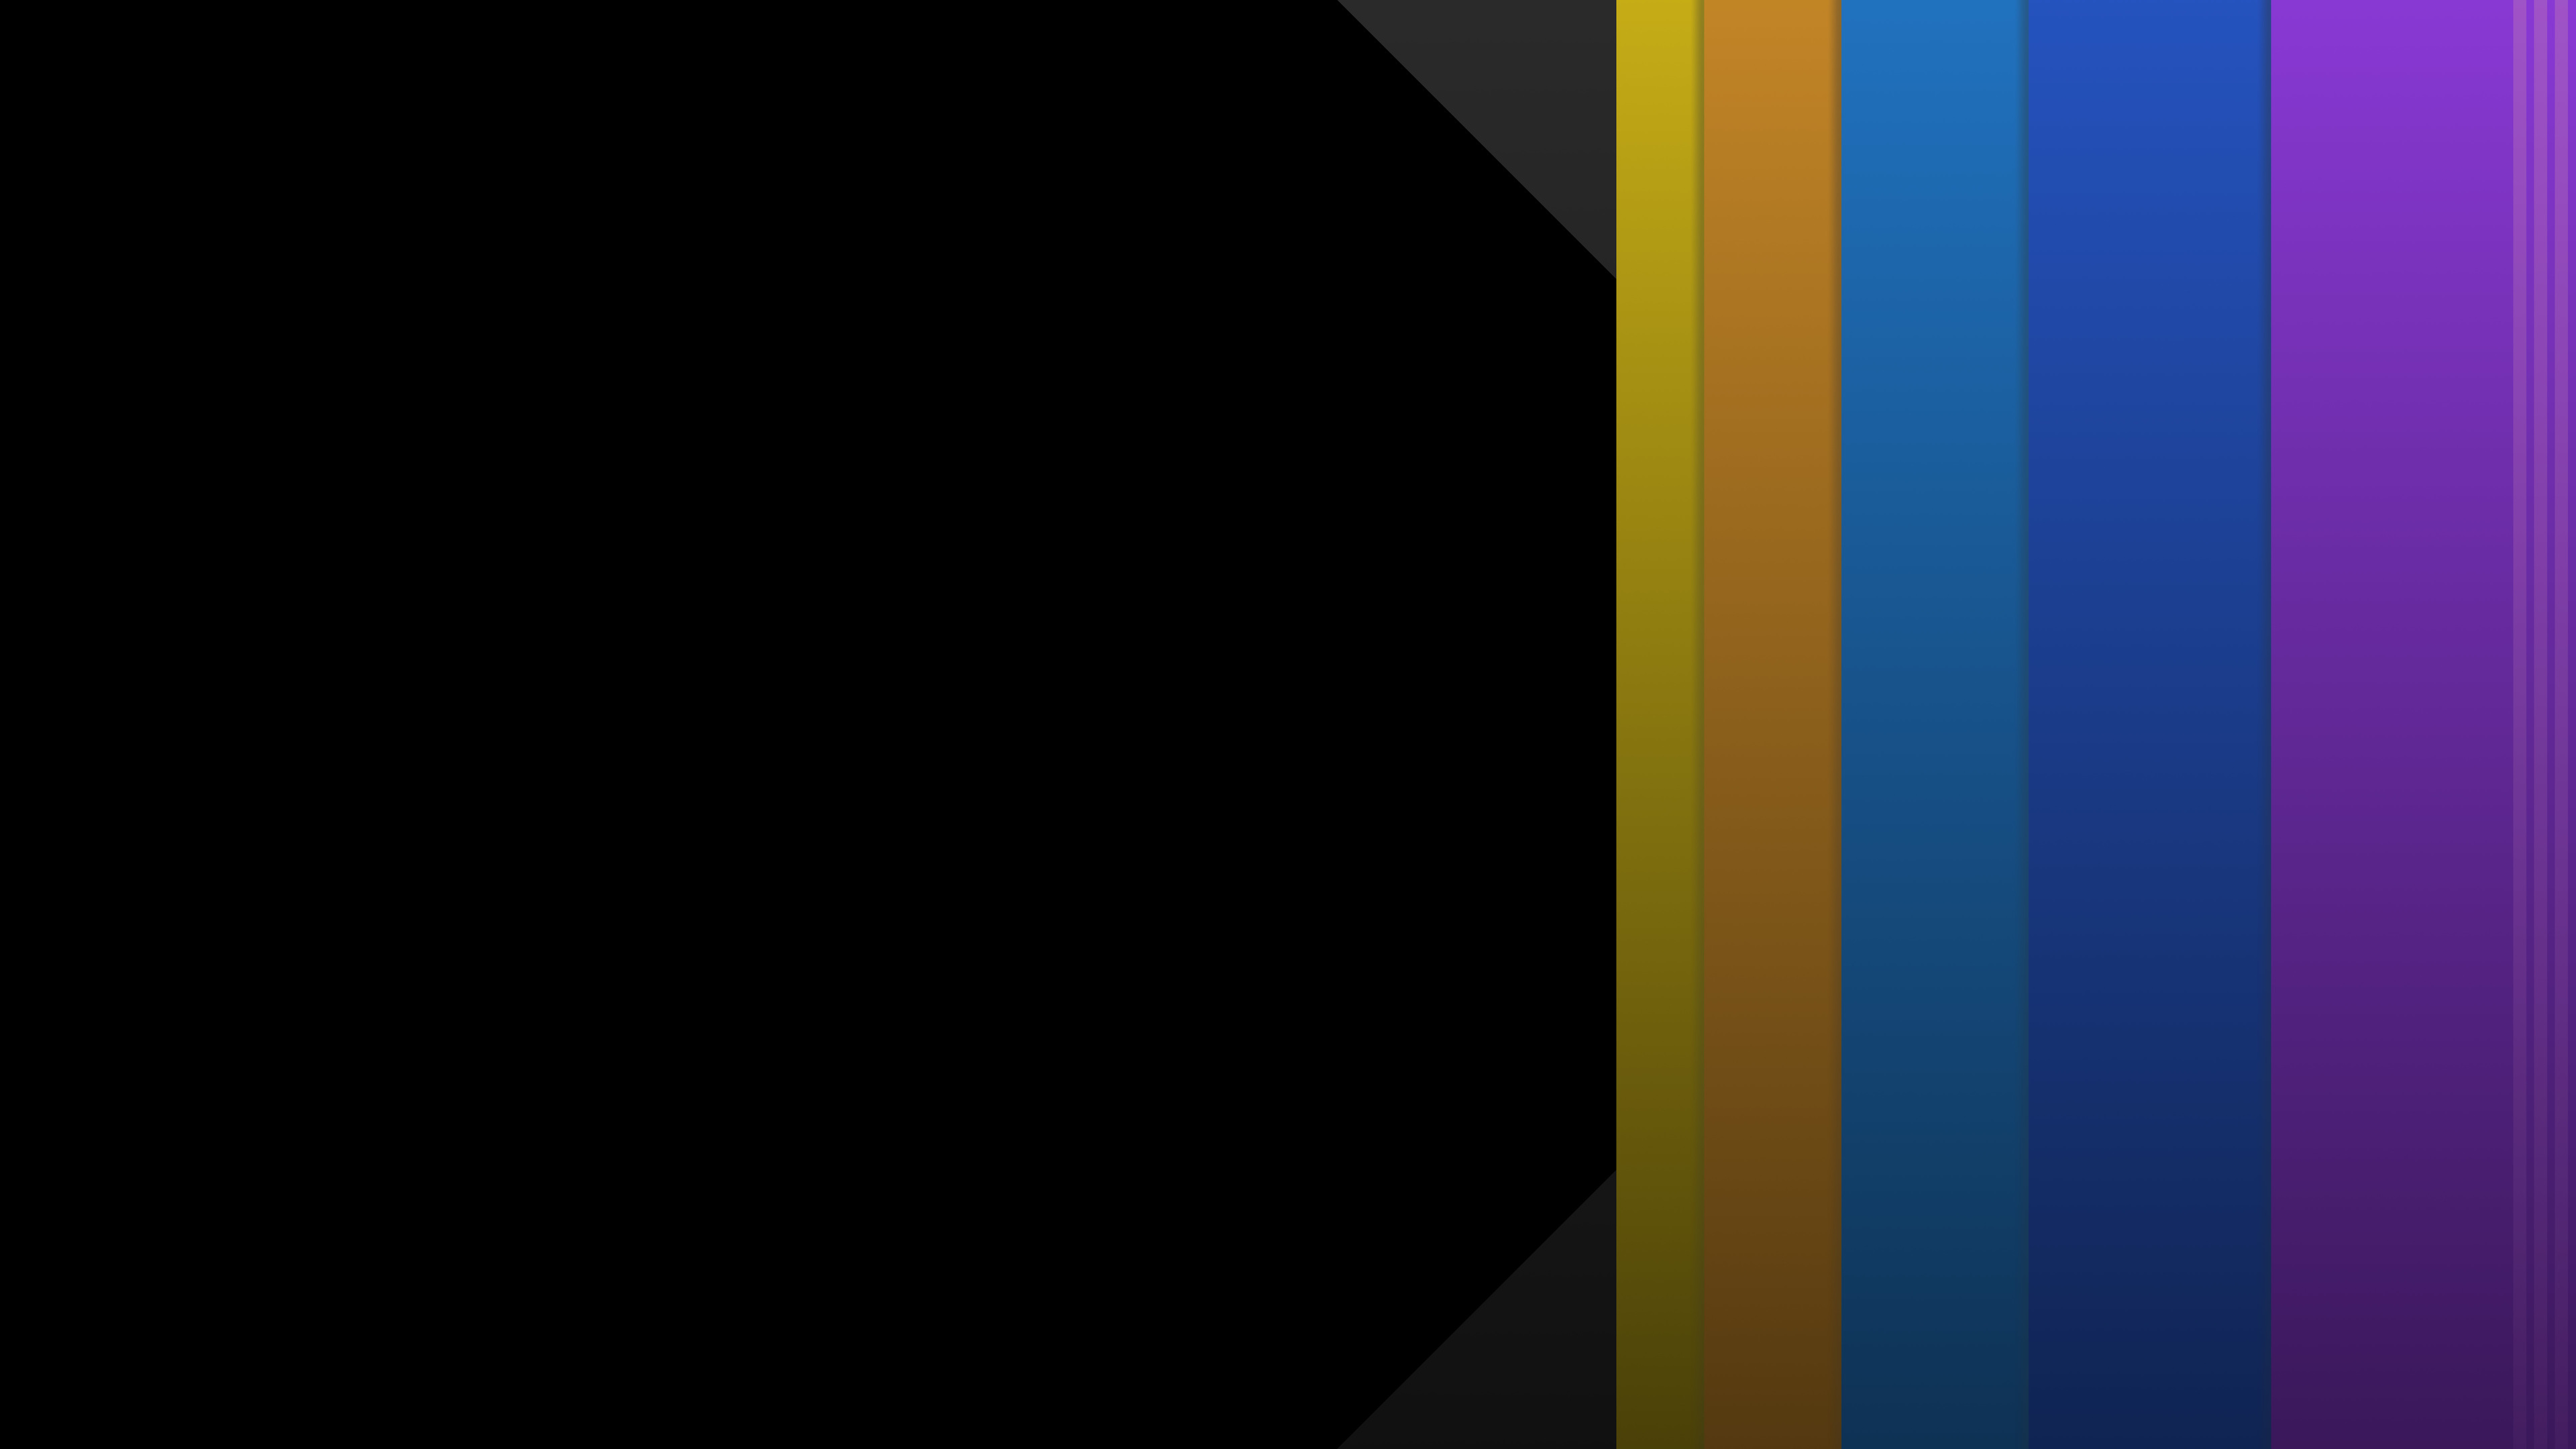 abstract minimalist colors 8k 1539370929 - Abstract Minimalist Colors 8k - minimalism wallpapers, hd-wallpapers, digital art wallpapers, colors wallpapers, abstract wallpapers, 8k wallpapers, 5k wallpapers, 4k-wallpapers